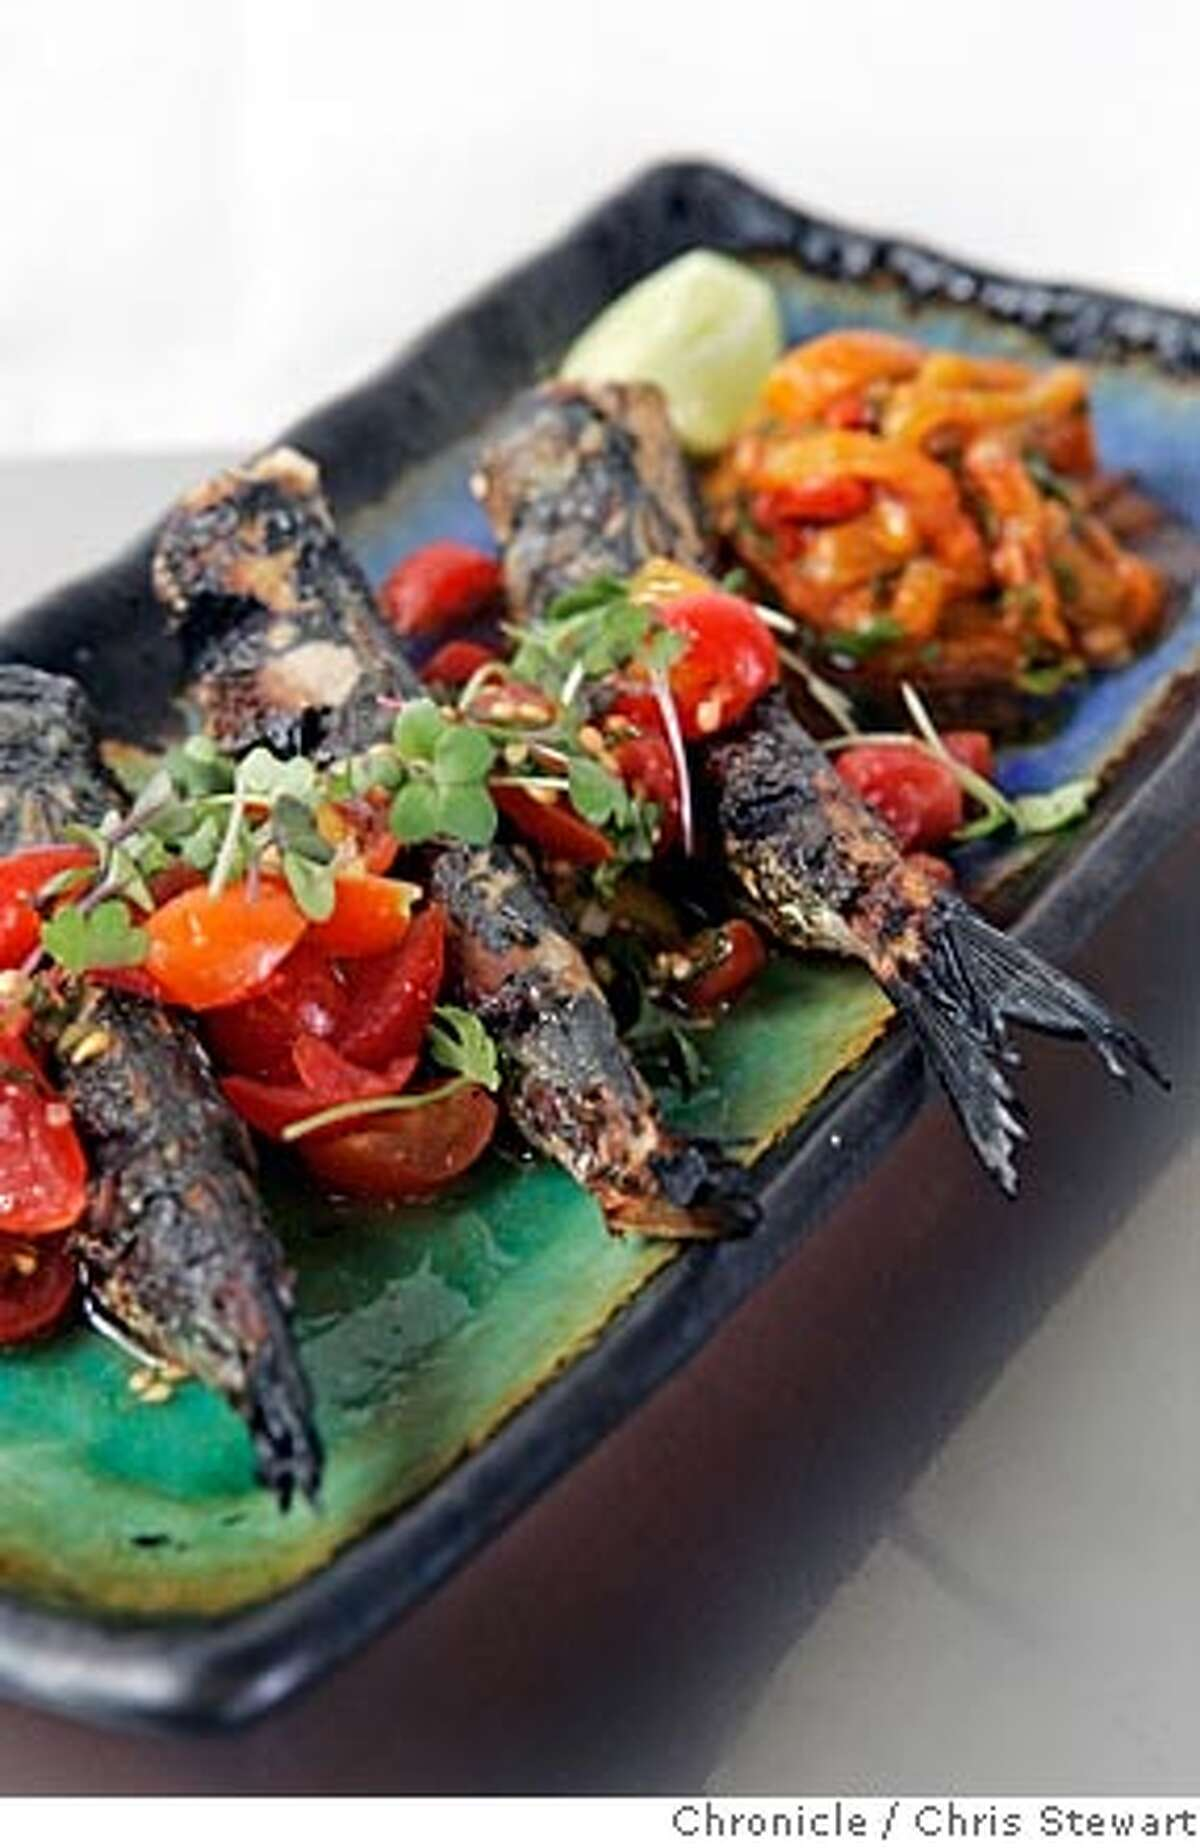 Event on 7/21/05 in Berkeley. A new restaurant in Berkeley called Sea Salt is featuring dishes such as the grilled local sardines with marinated roasted peppers and tomato-mint vinaigrette. The restaurant is located at 2512 San Pablo Avenue. Chris Stewart / The Chronicle